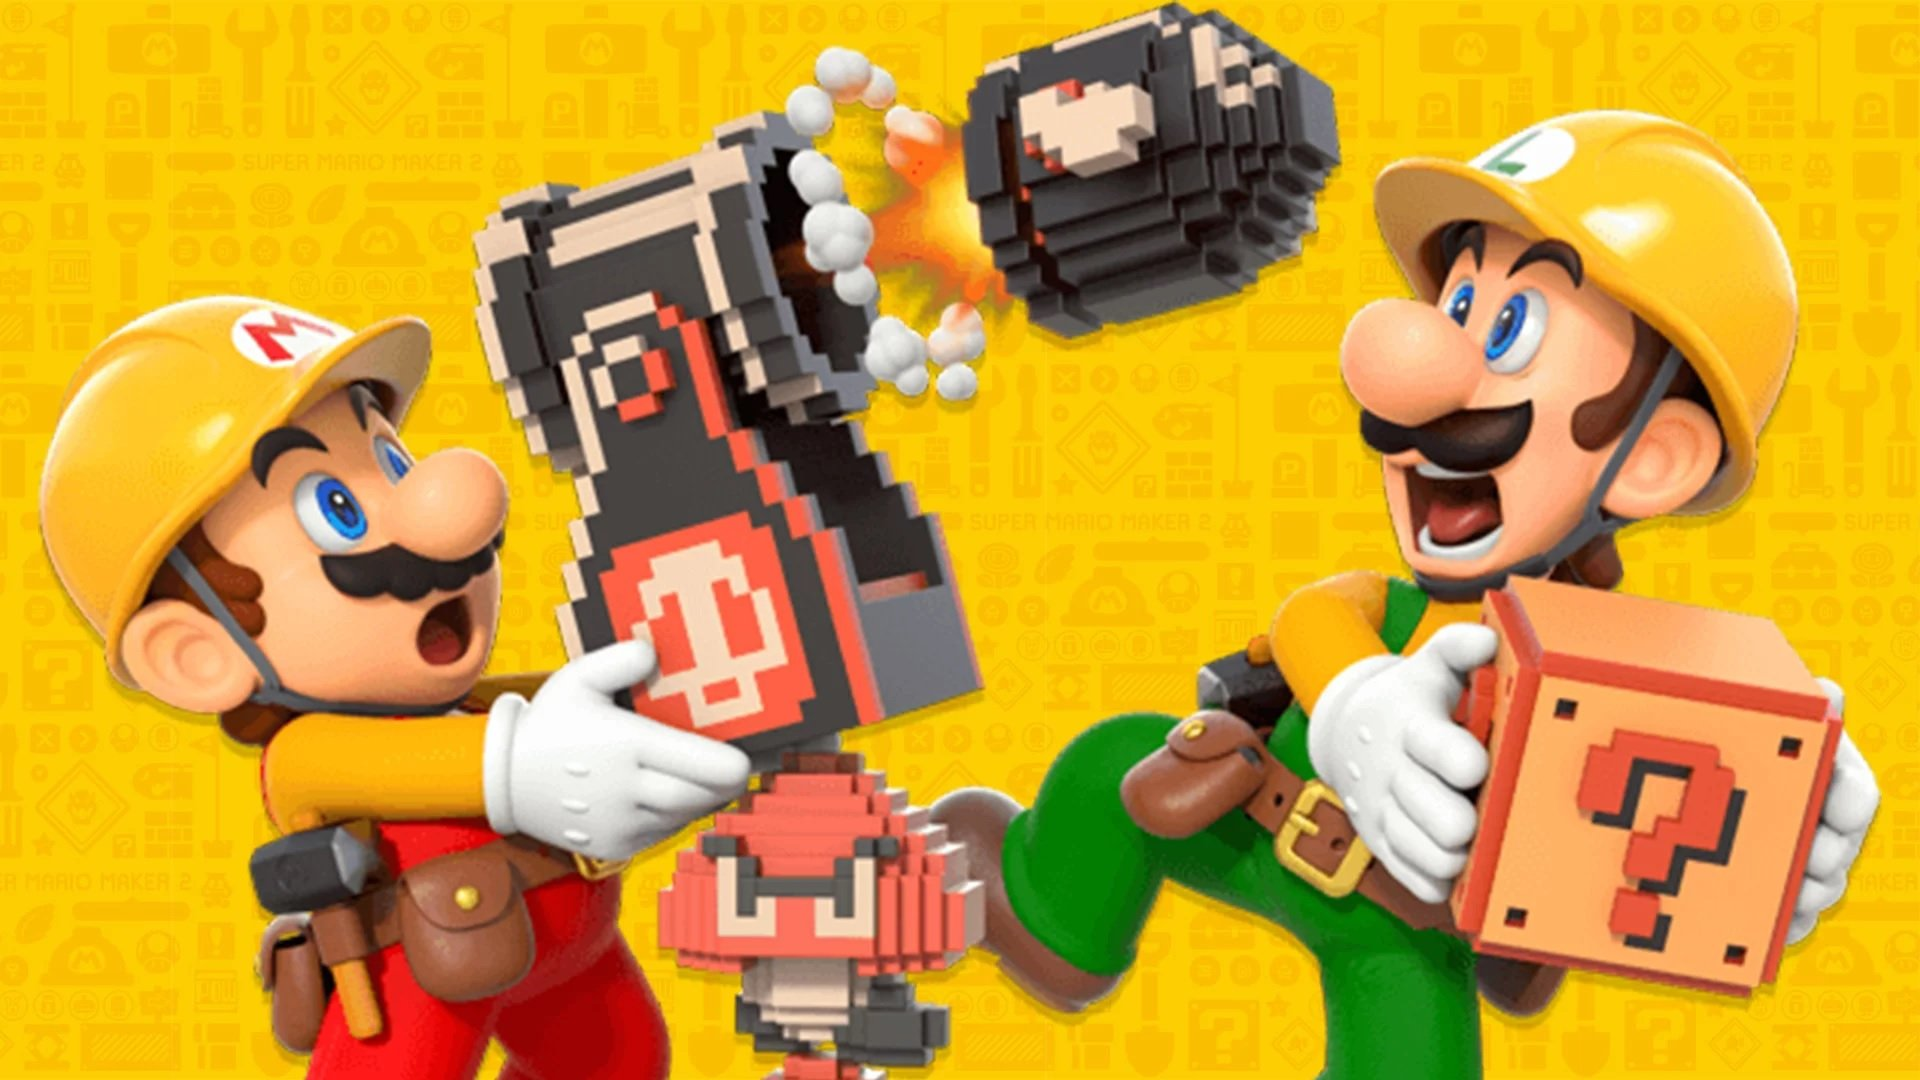 How to play local co-op in Super Mario Maker 2 | Shacknews